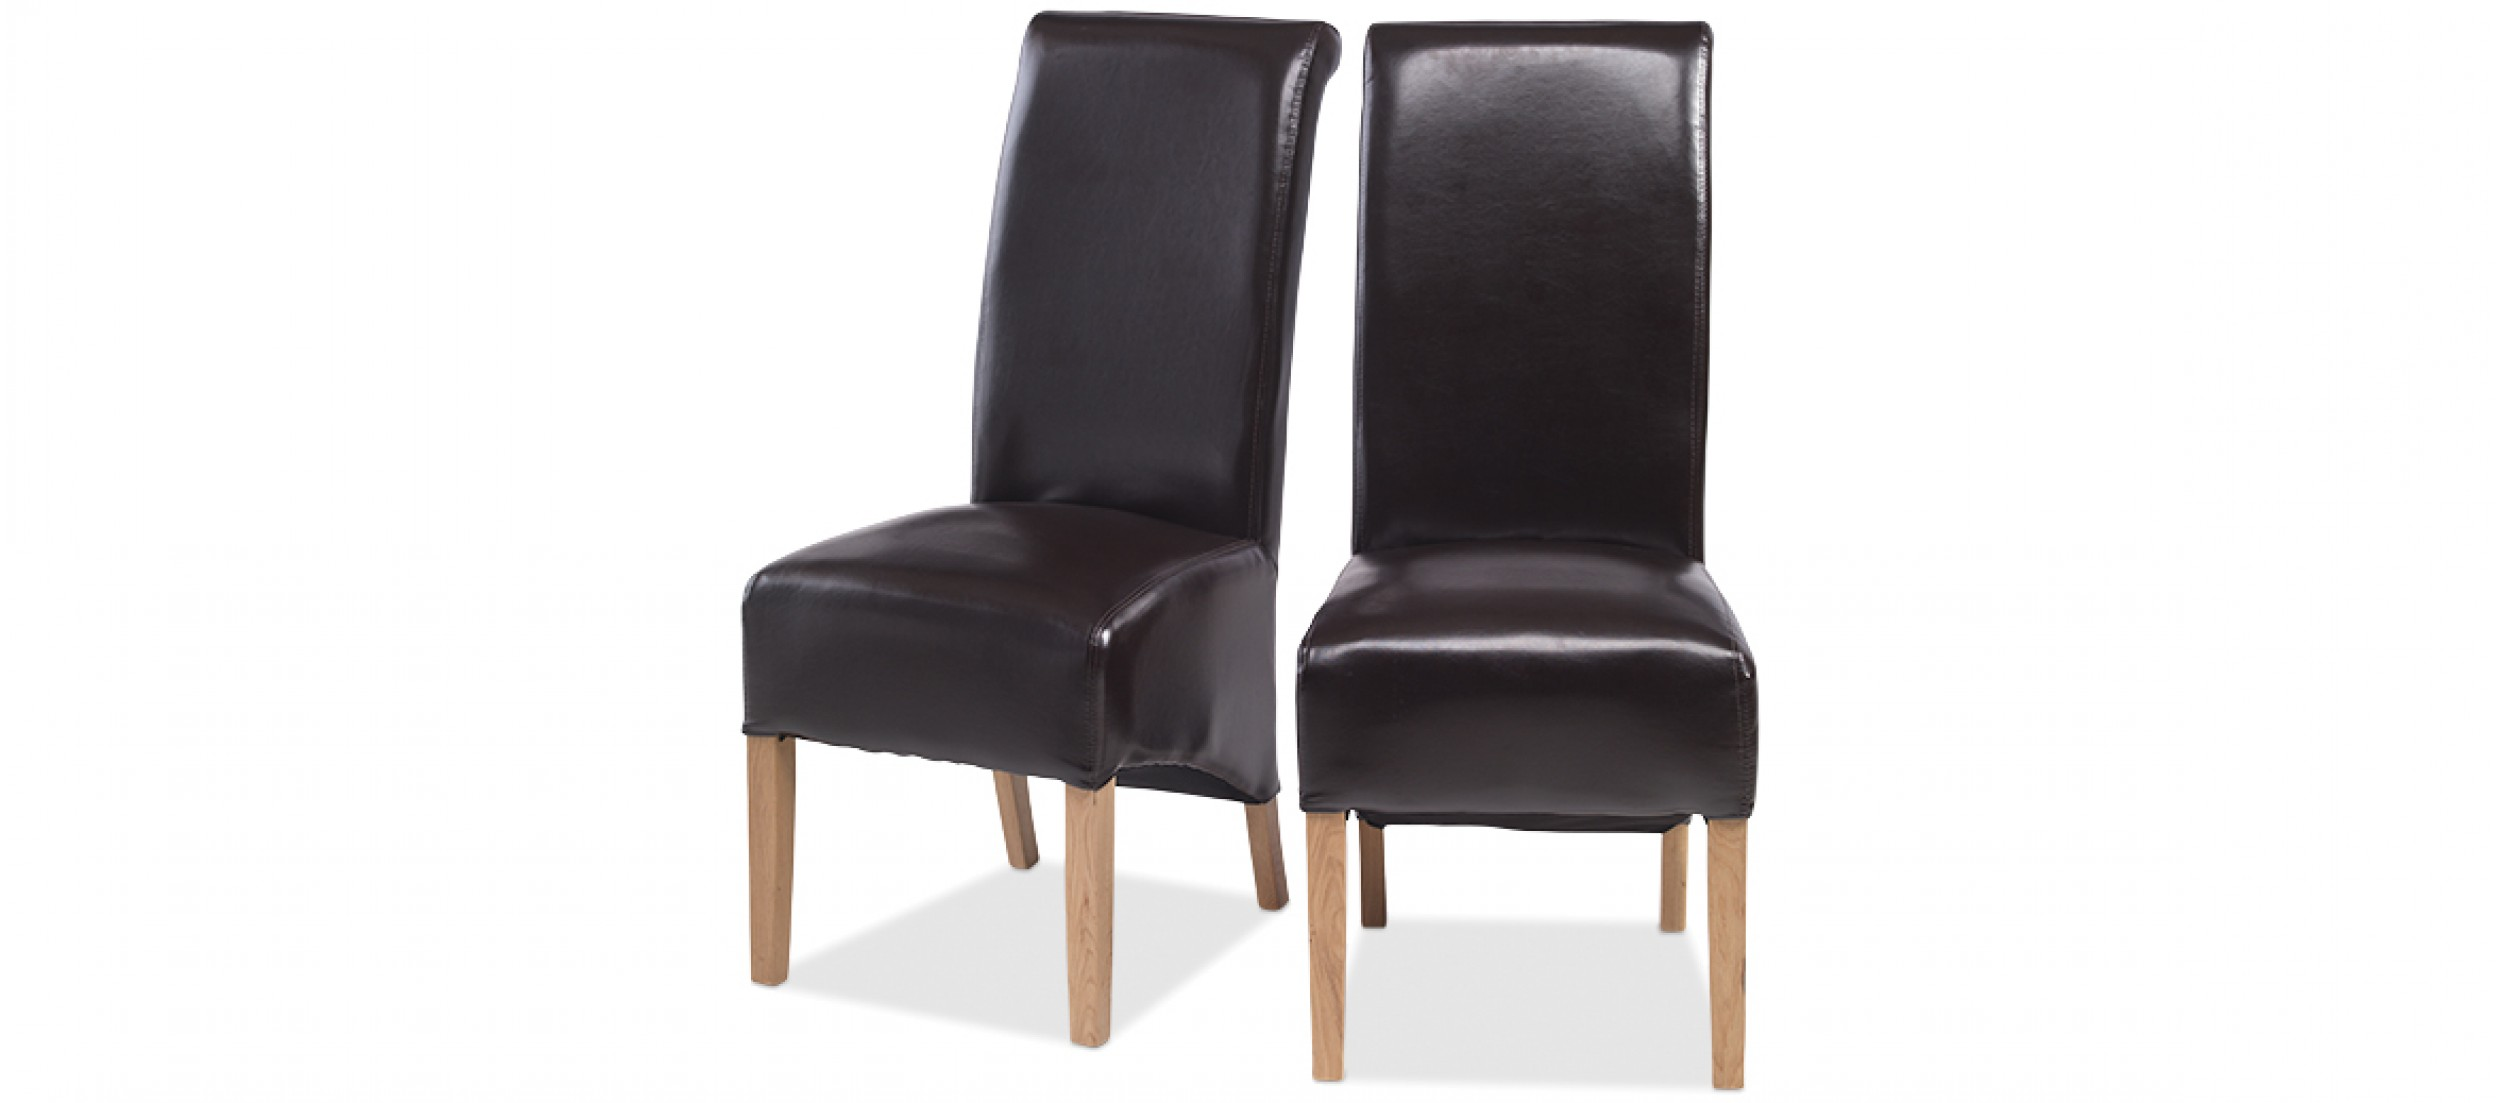 Cube oak bonded leather dining chairs brown pair